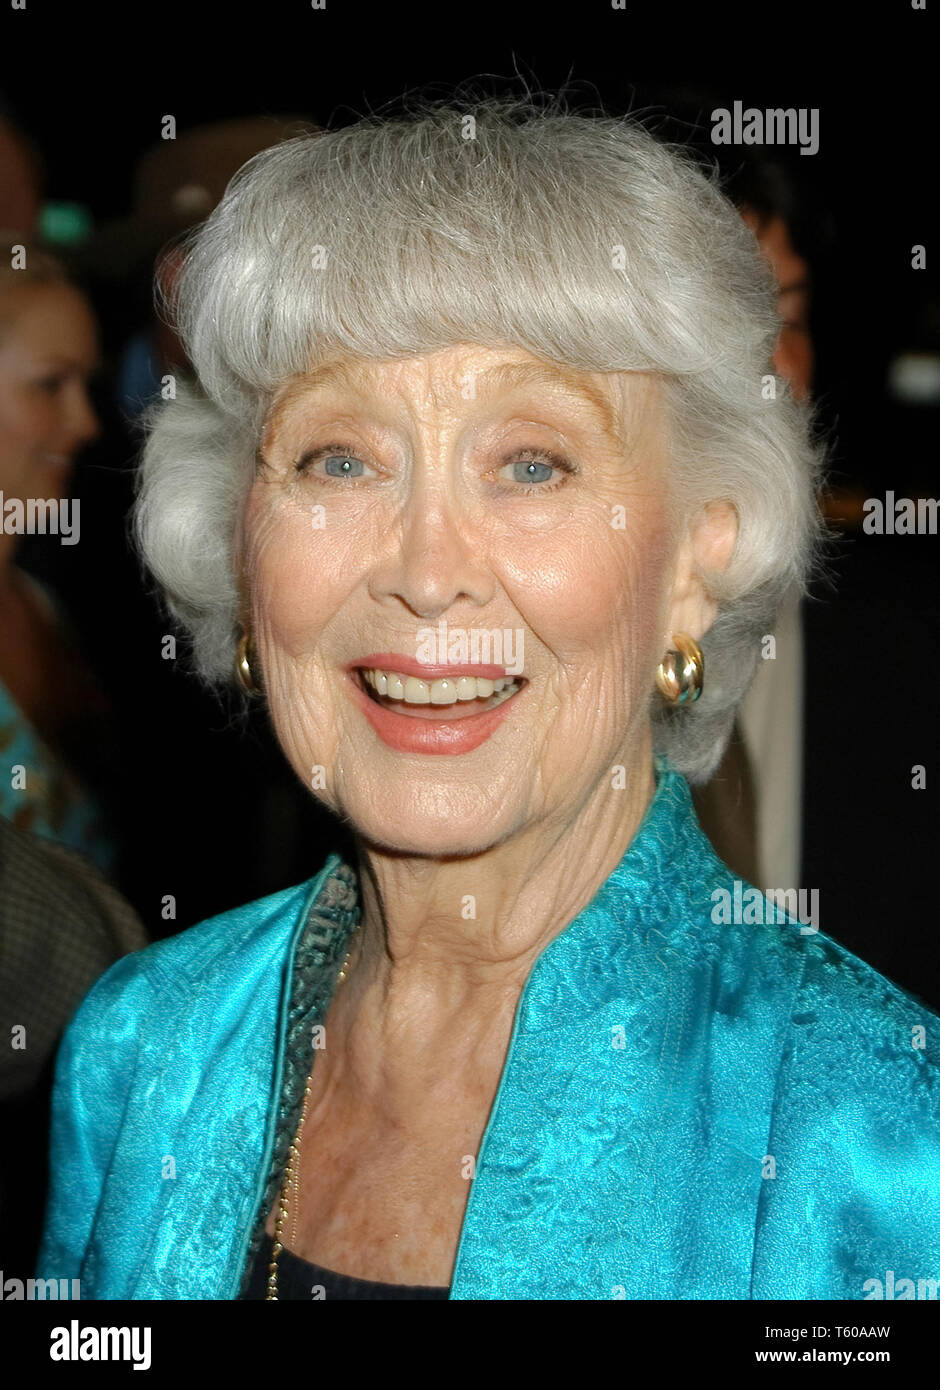 Betty Garrett at the Academy of Television Arts & Sciences dinner honoring the 55th Annual Primetime Emmy Awards Nominees for Outstanding Performing Talent at Spagos in Beverly Hills, CA. The event took place on Thursday, September 18, 2003. Photo by: SBM / PictureLux  File Reference # 33790_1405SBMPLX - Stock Image